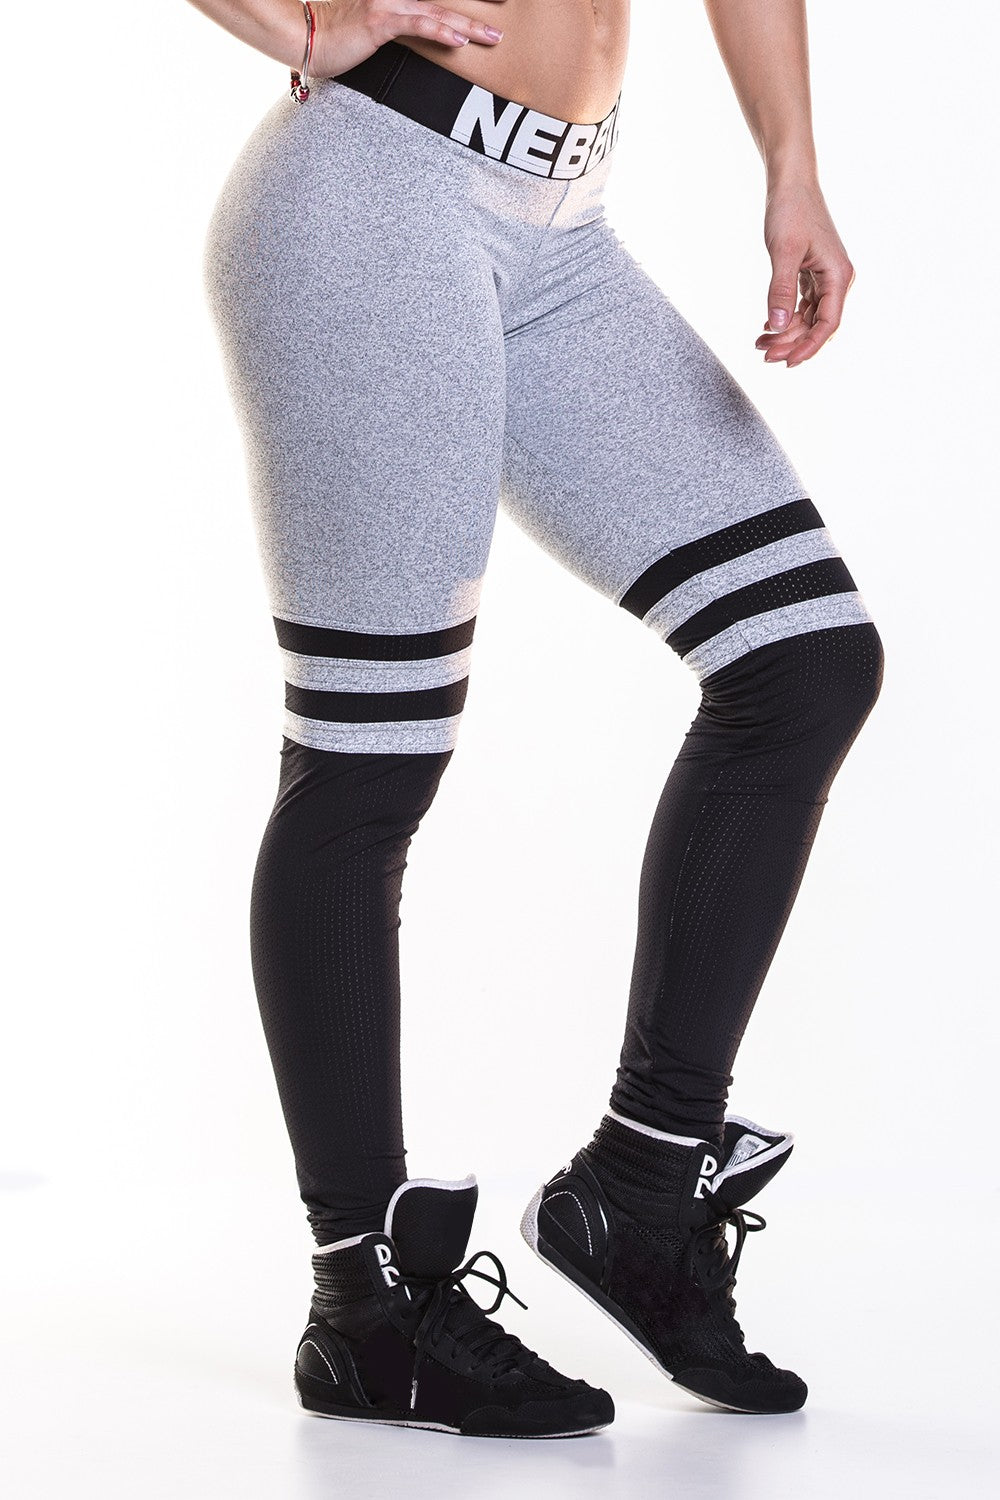 Nebbia - Leggings Over the Knee - Grey (286) - Seitlich